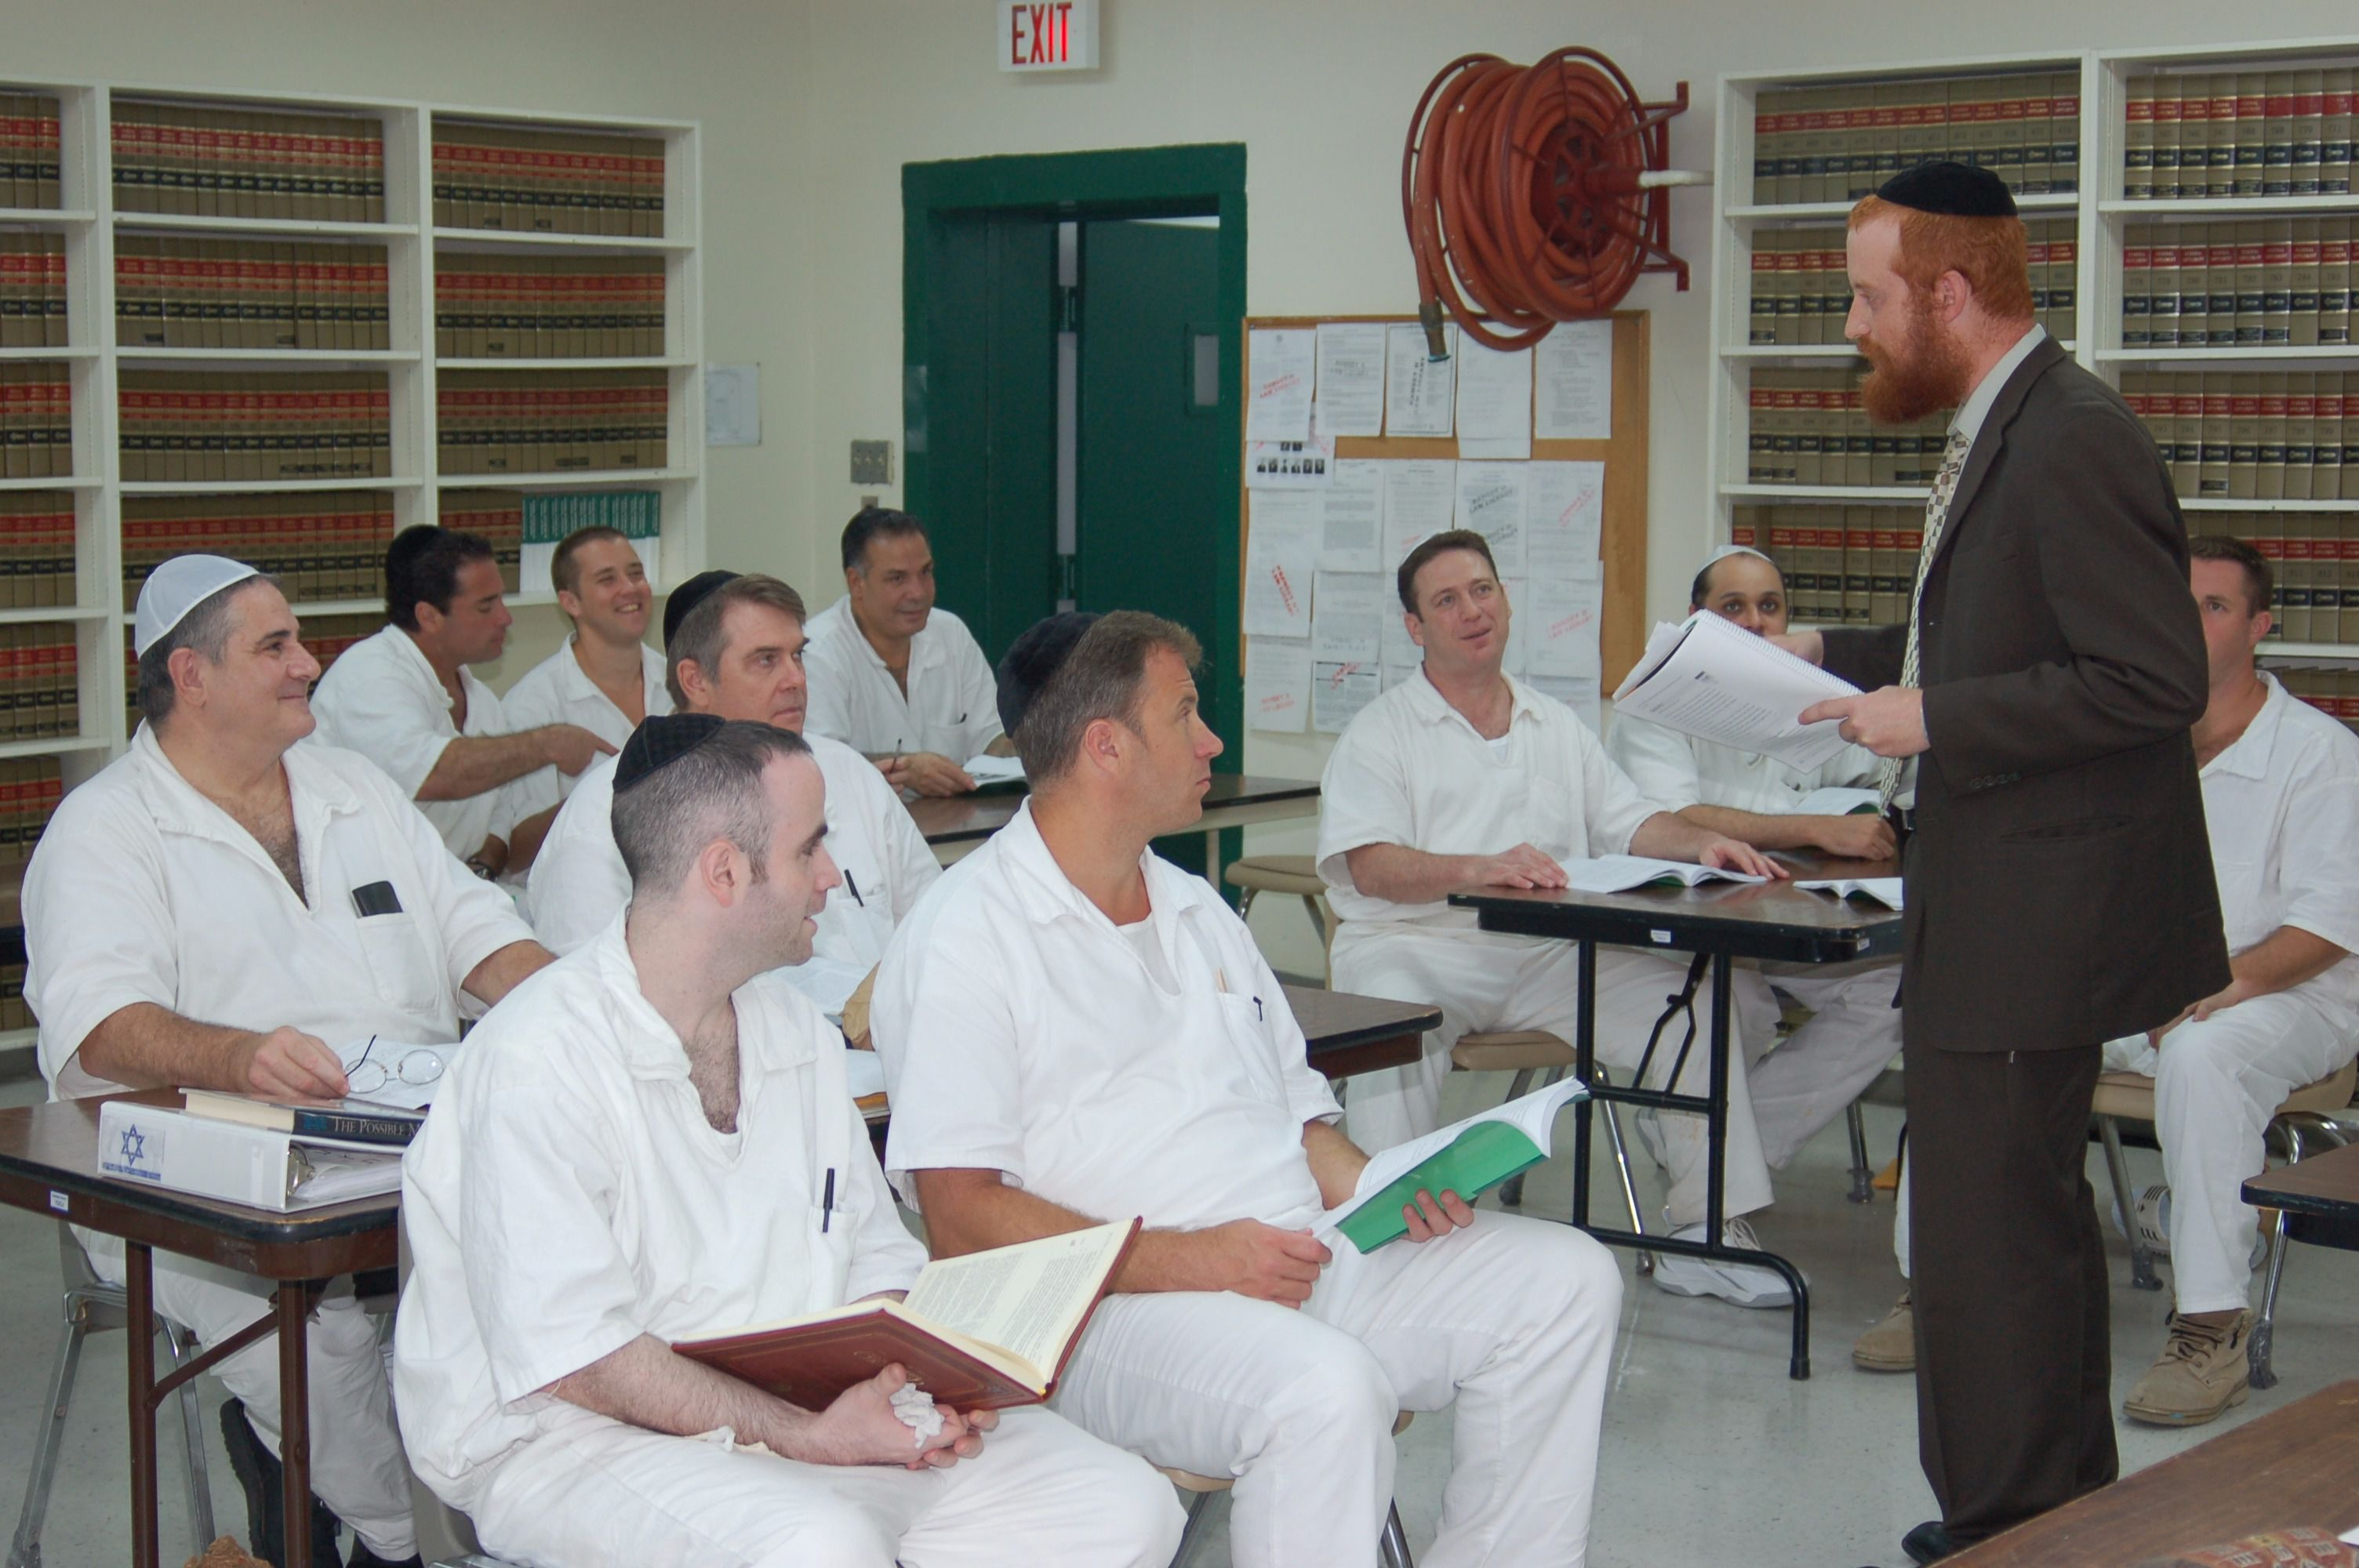 A Bar Mitzvah on Death Row